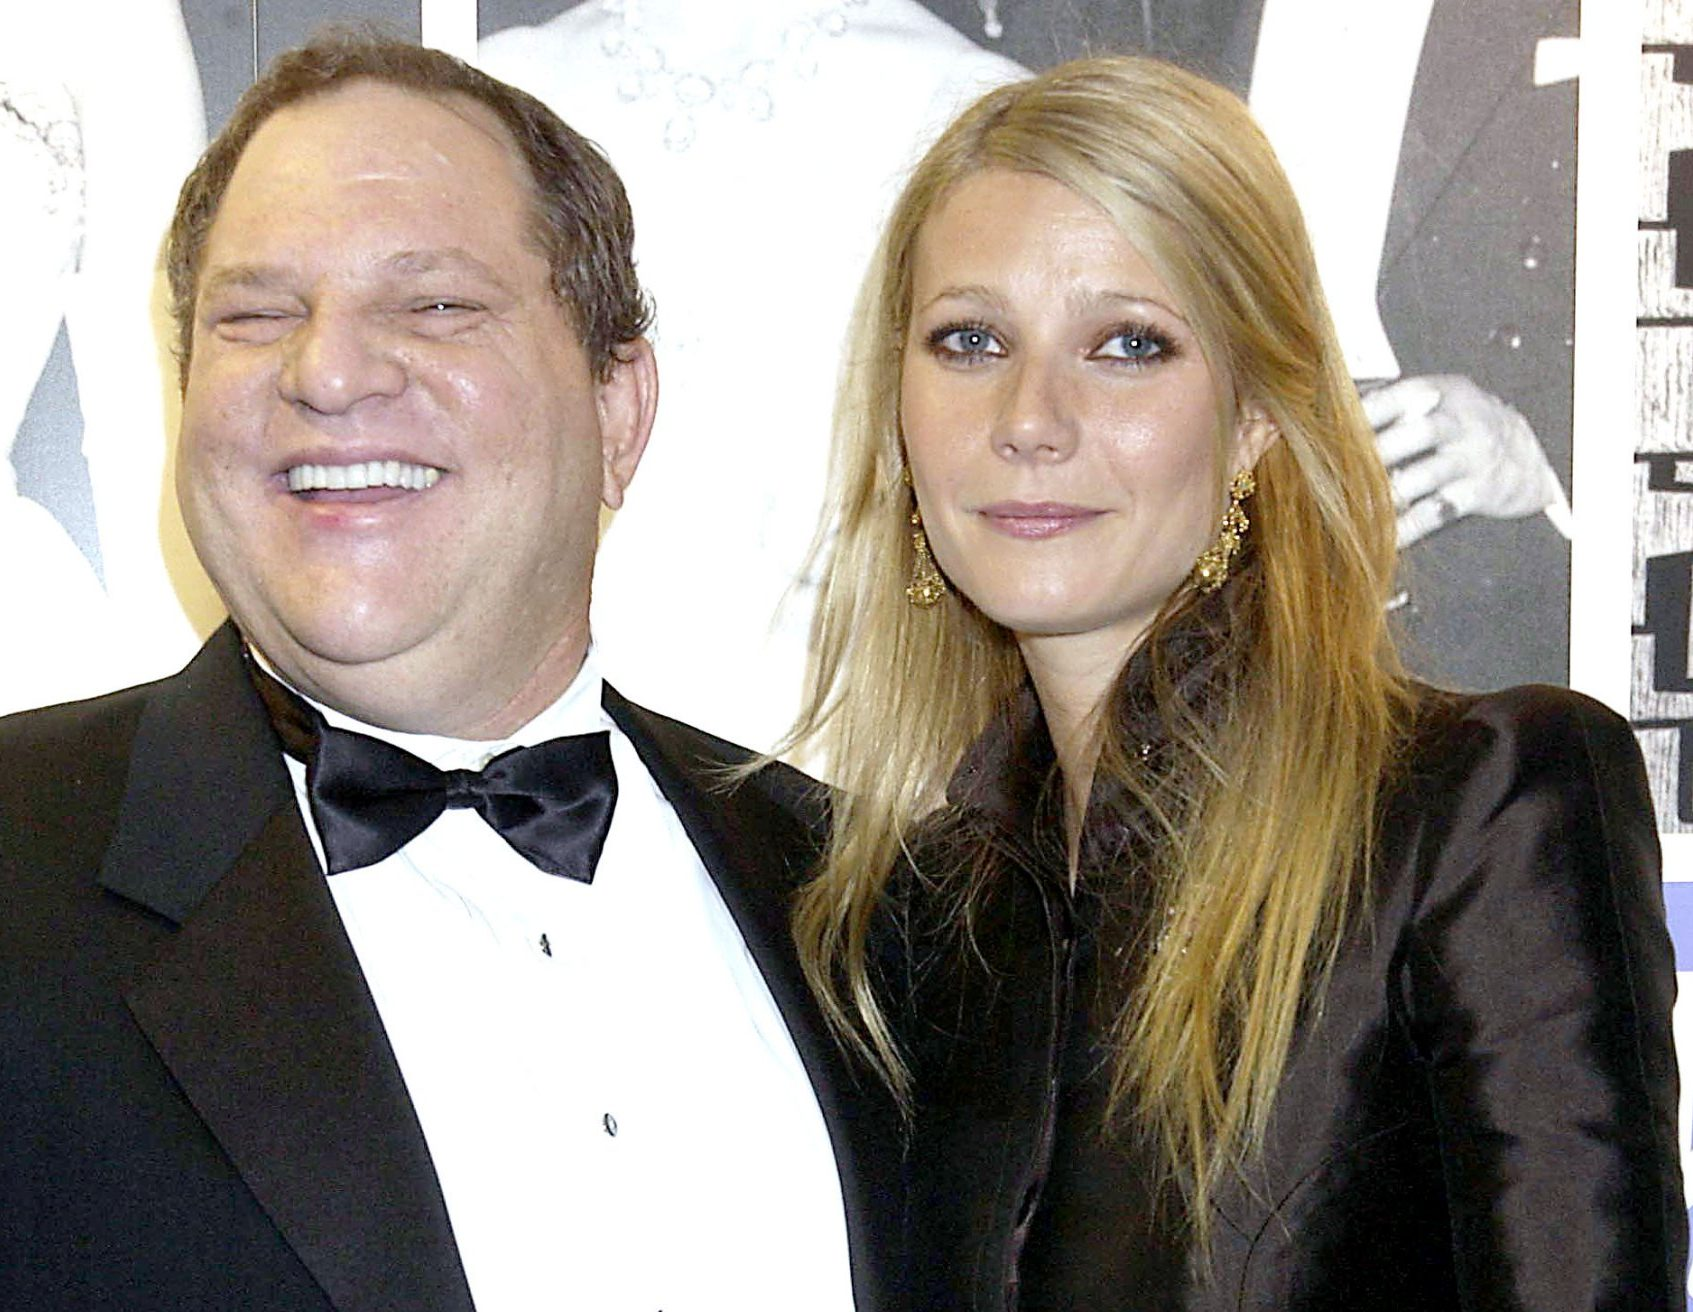 UNITED KINGDOM - OCTOBER 20: Gwyneth Paltrow With Harvey Weinstein, The 50th Anniversary Gala Of The National Film Theatre, At The National Film Theatre, London (Photo by Dave Benett/Getty Images)